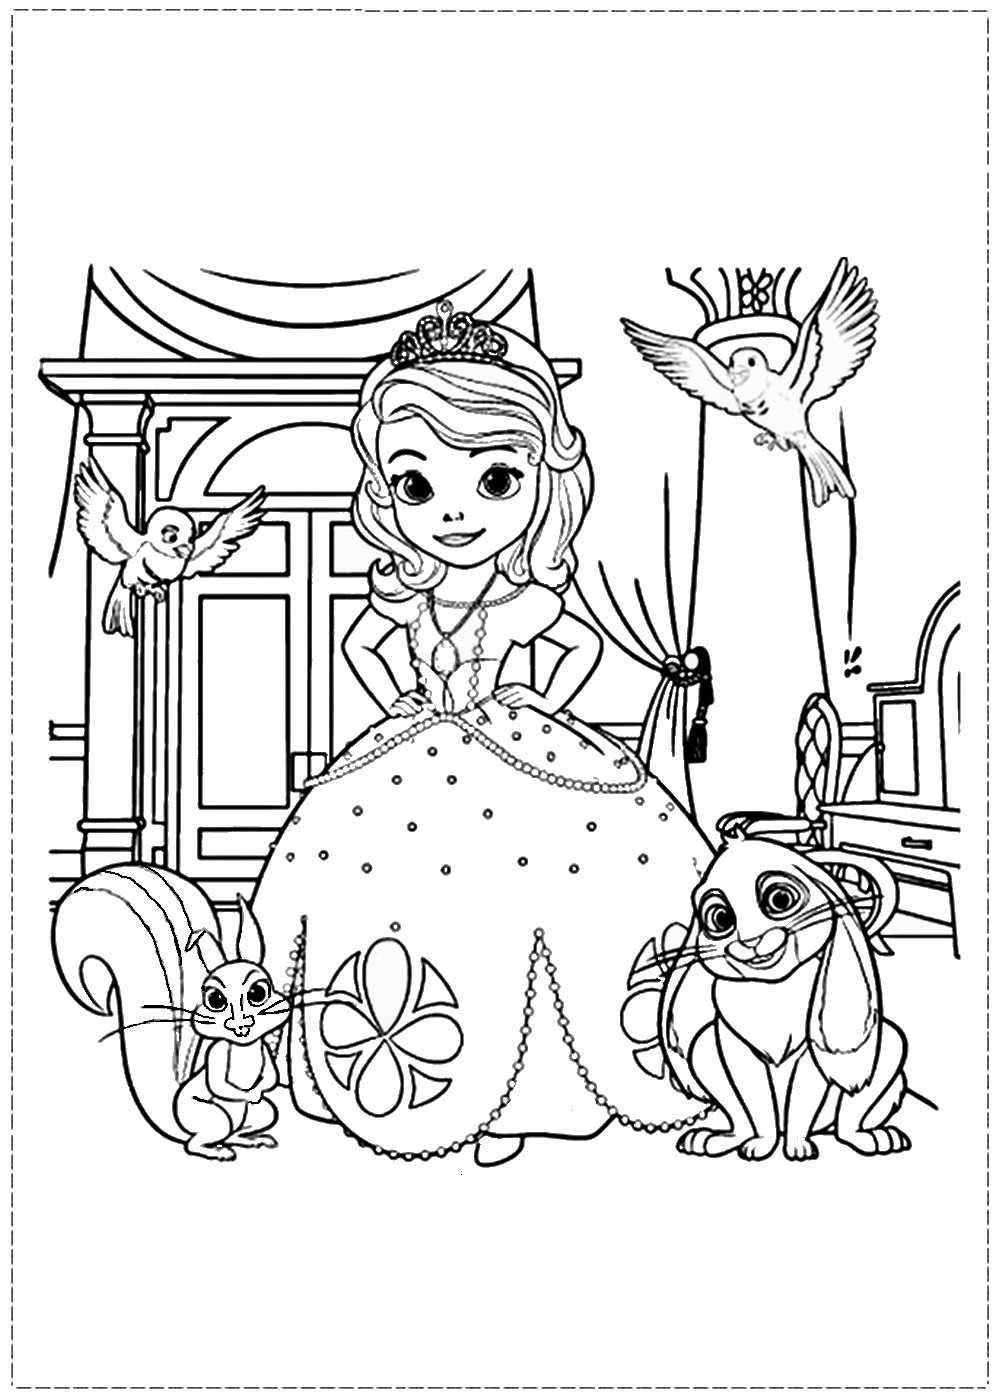 sofia the first coloring book sofia the first coloring pages the coloring sofia book first